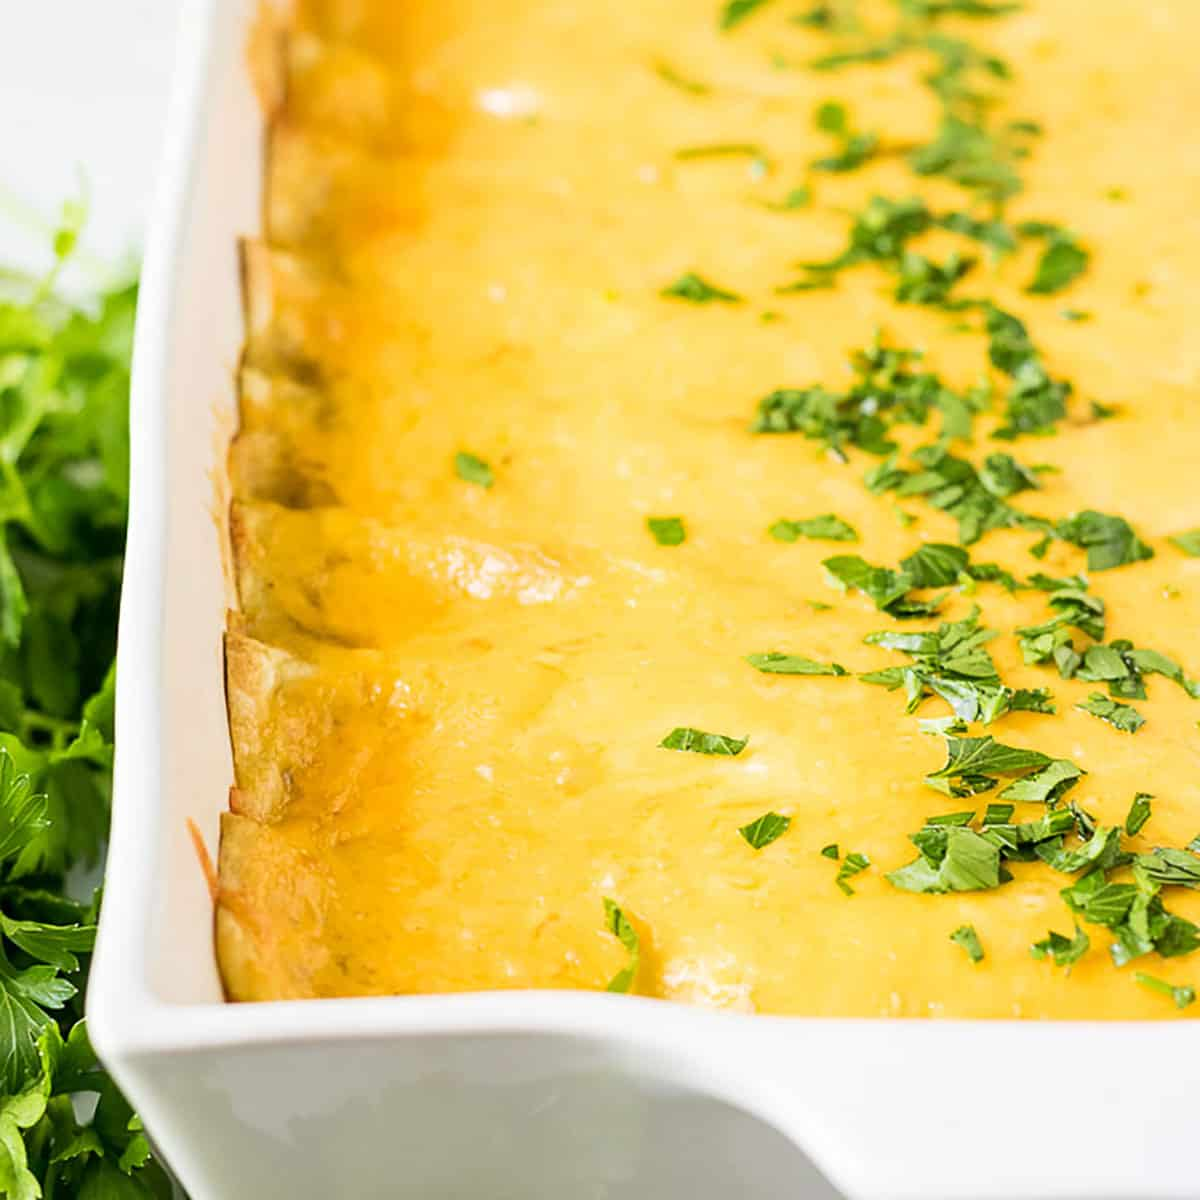 Baking pan full of cheesy breakfast enchiladas topped with chopped parsely.